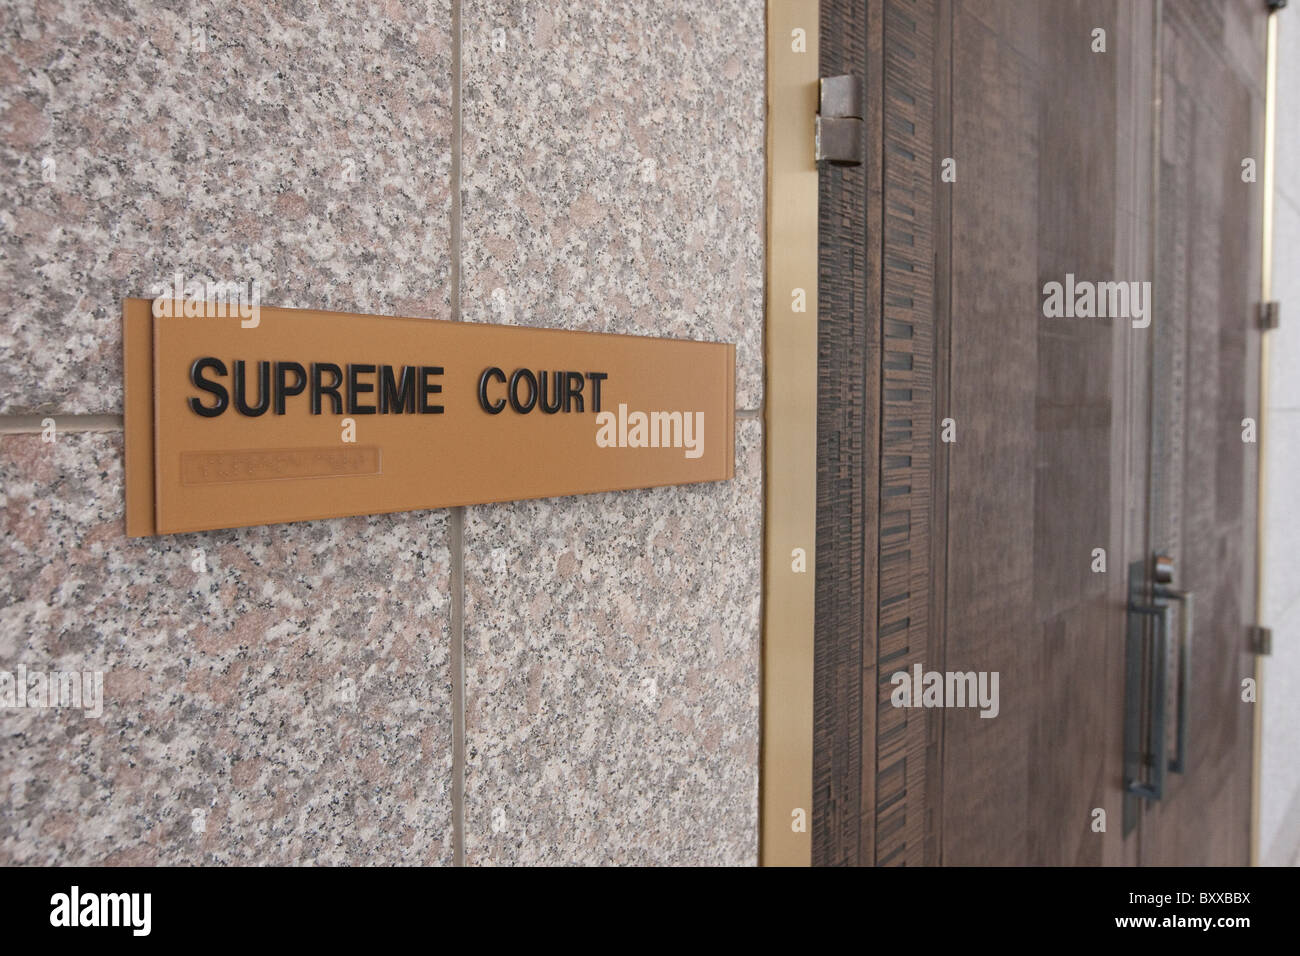 Sign for Texas Supreme Court chamber, written in English with Braille underneath, in the Supreme Court building - Stock Image